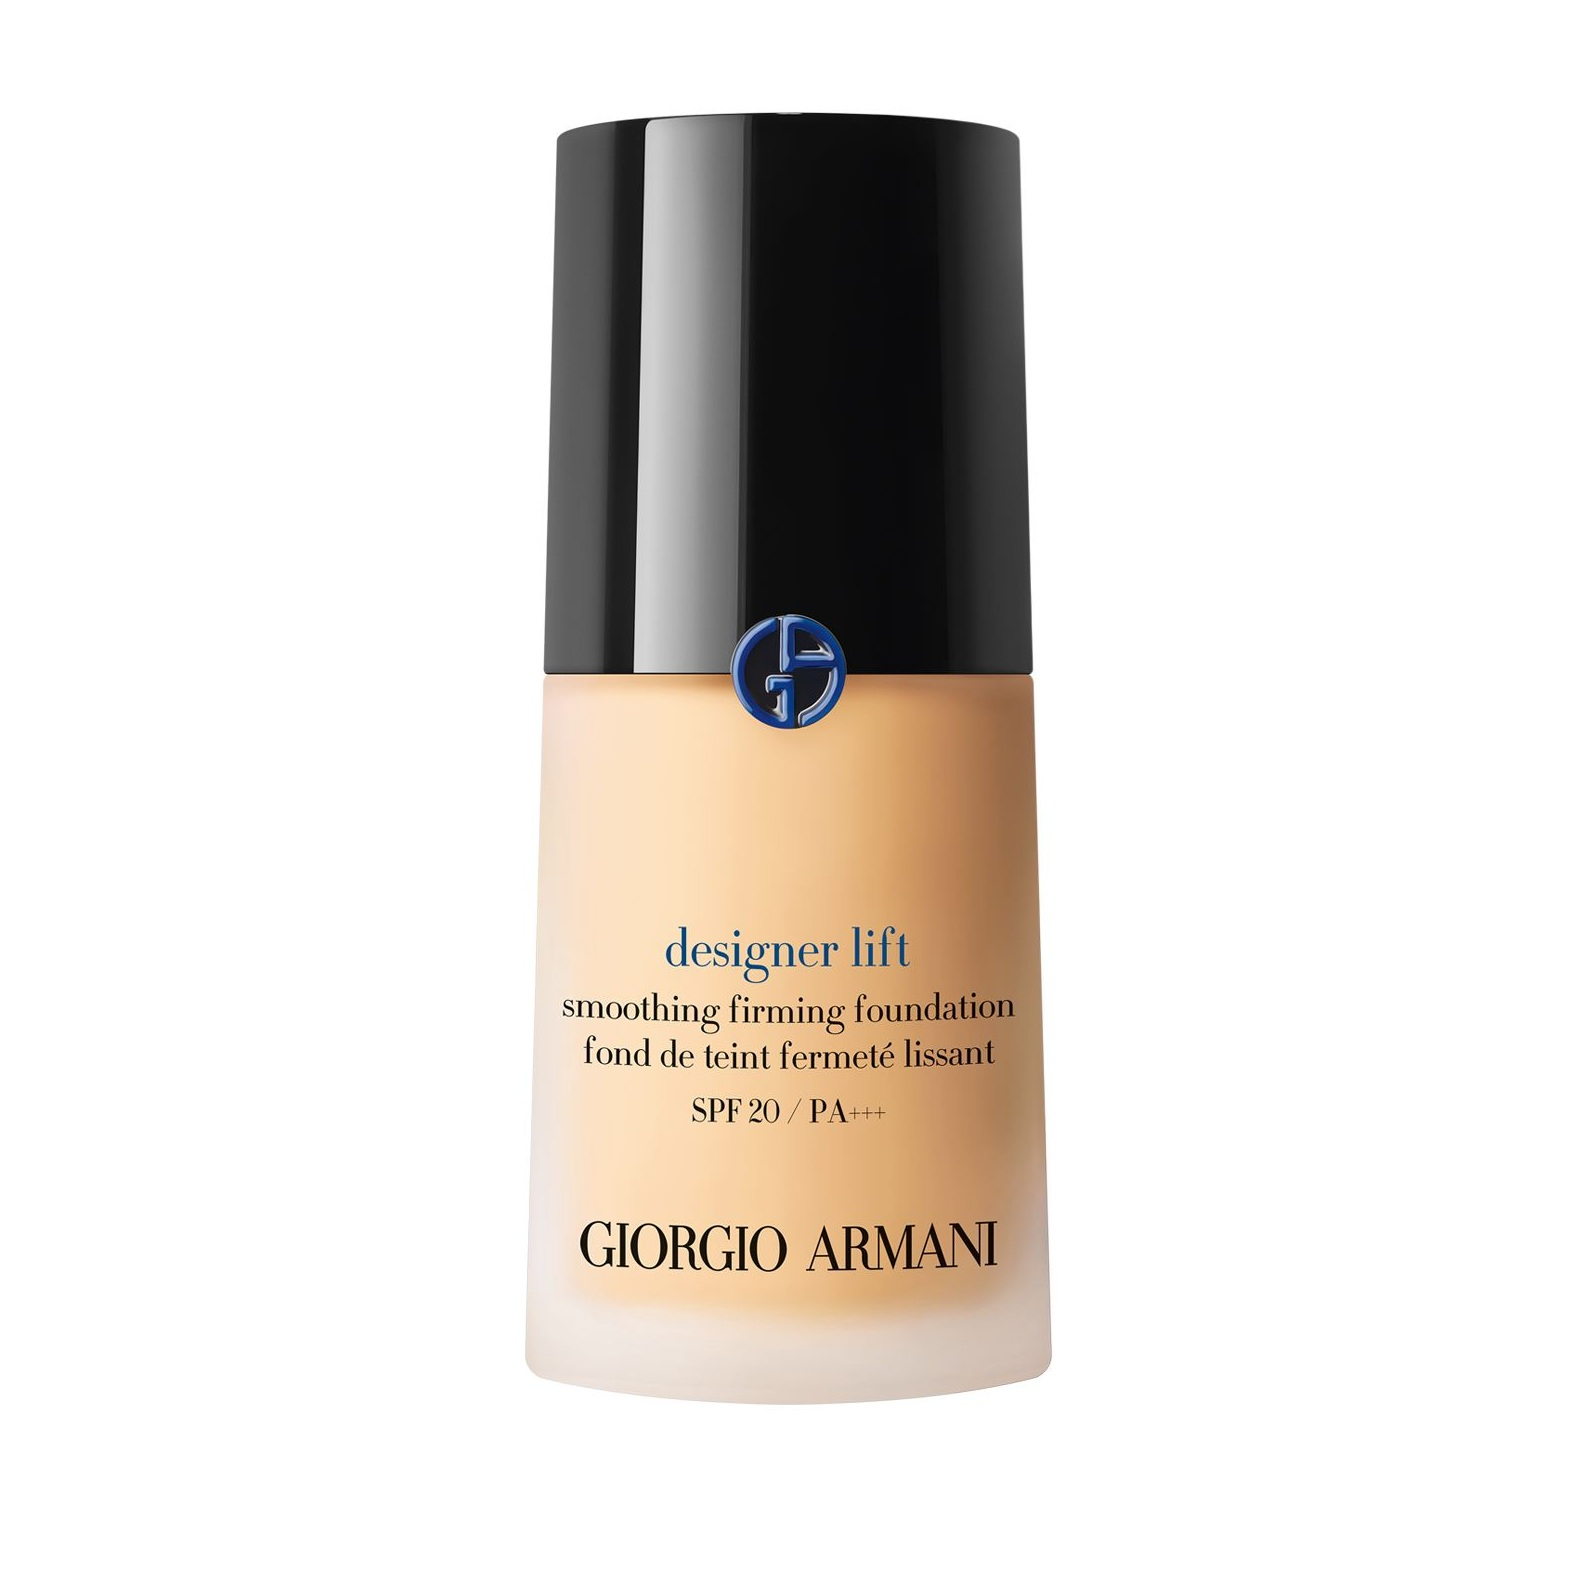 Giorgio Armani Designer Lift Smoothing Firming Foundation with SPF 20 No.2